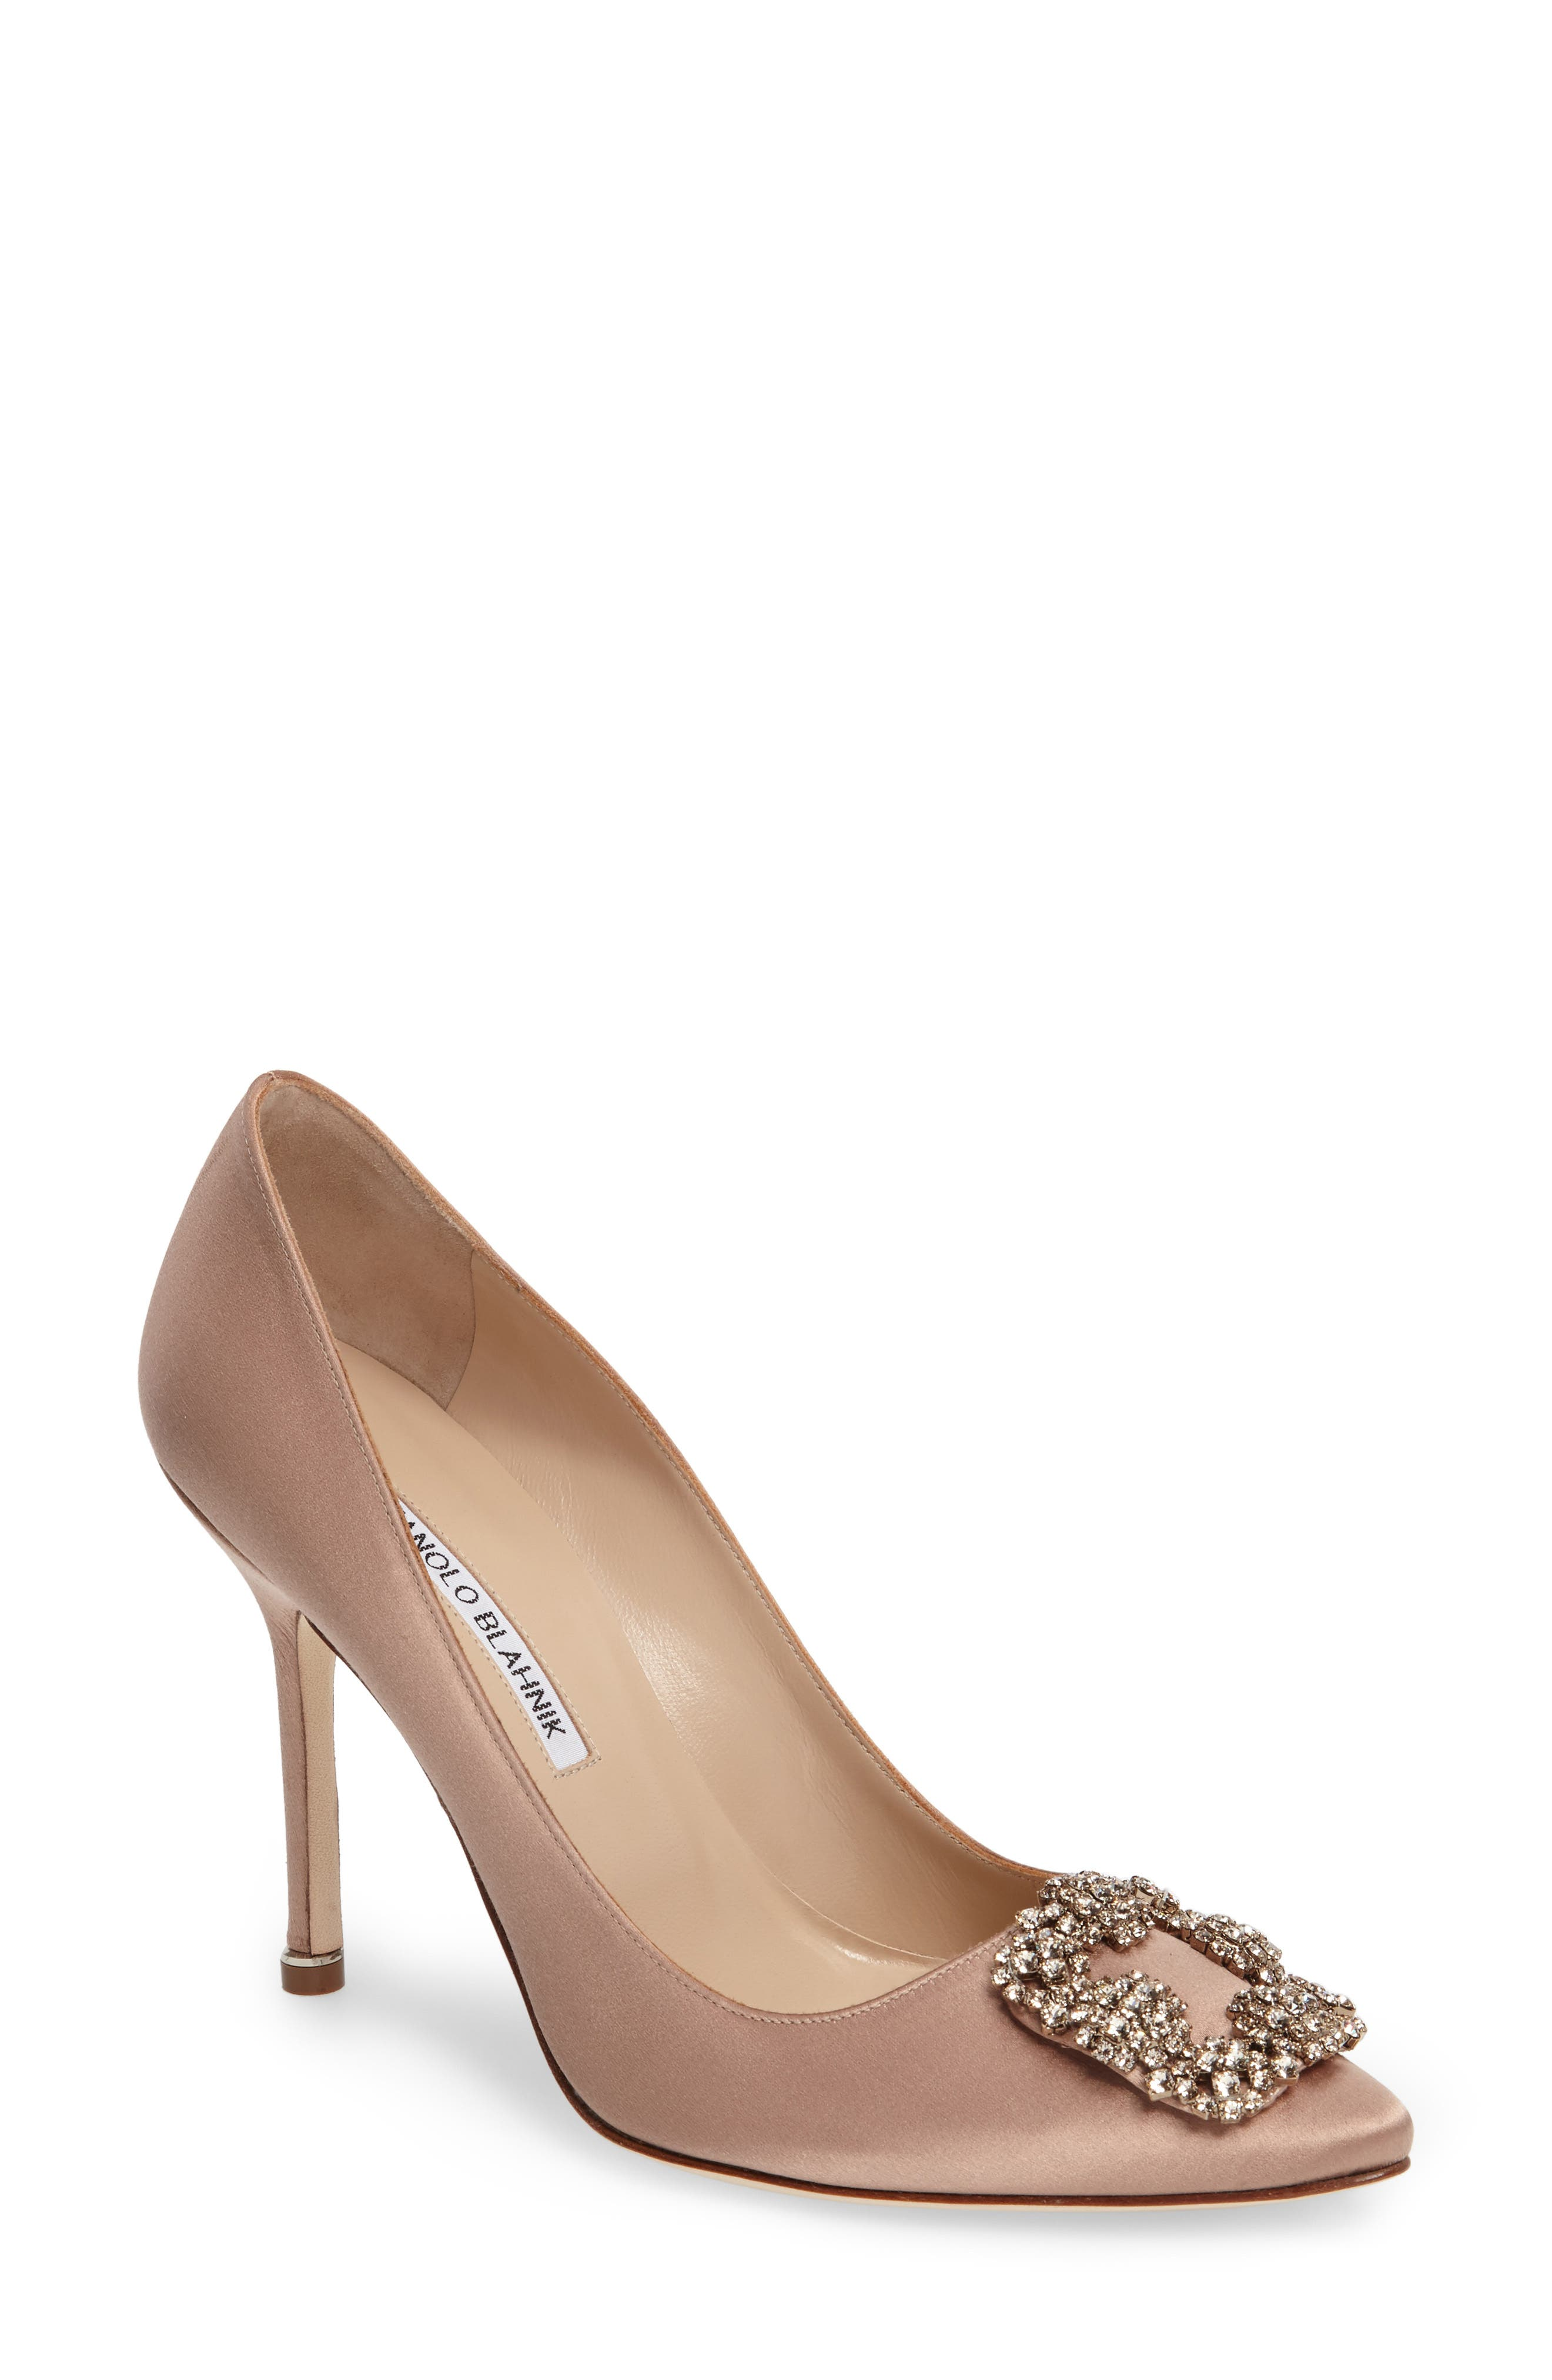 Main Image - Manolo Blahnik 'Hangisi' Jewel Pump (Women)